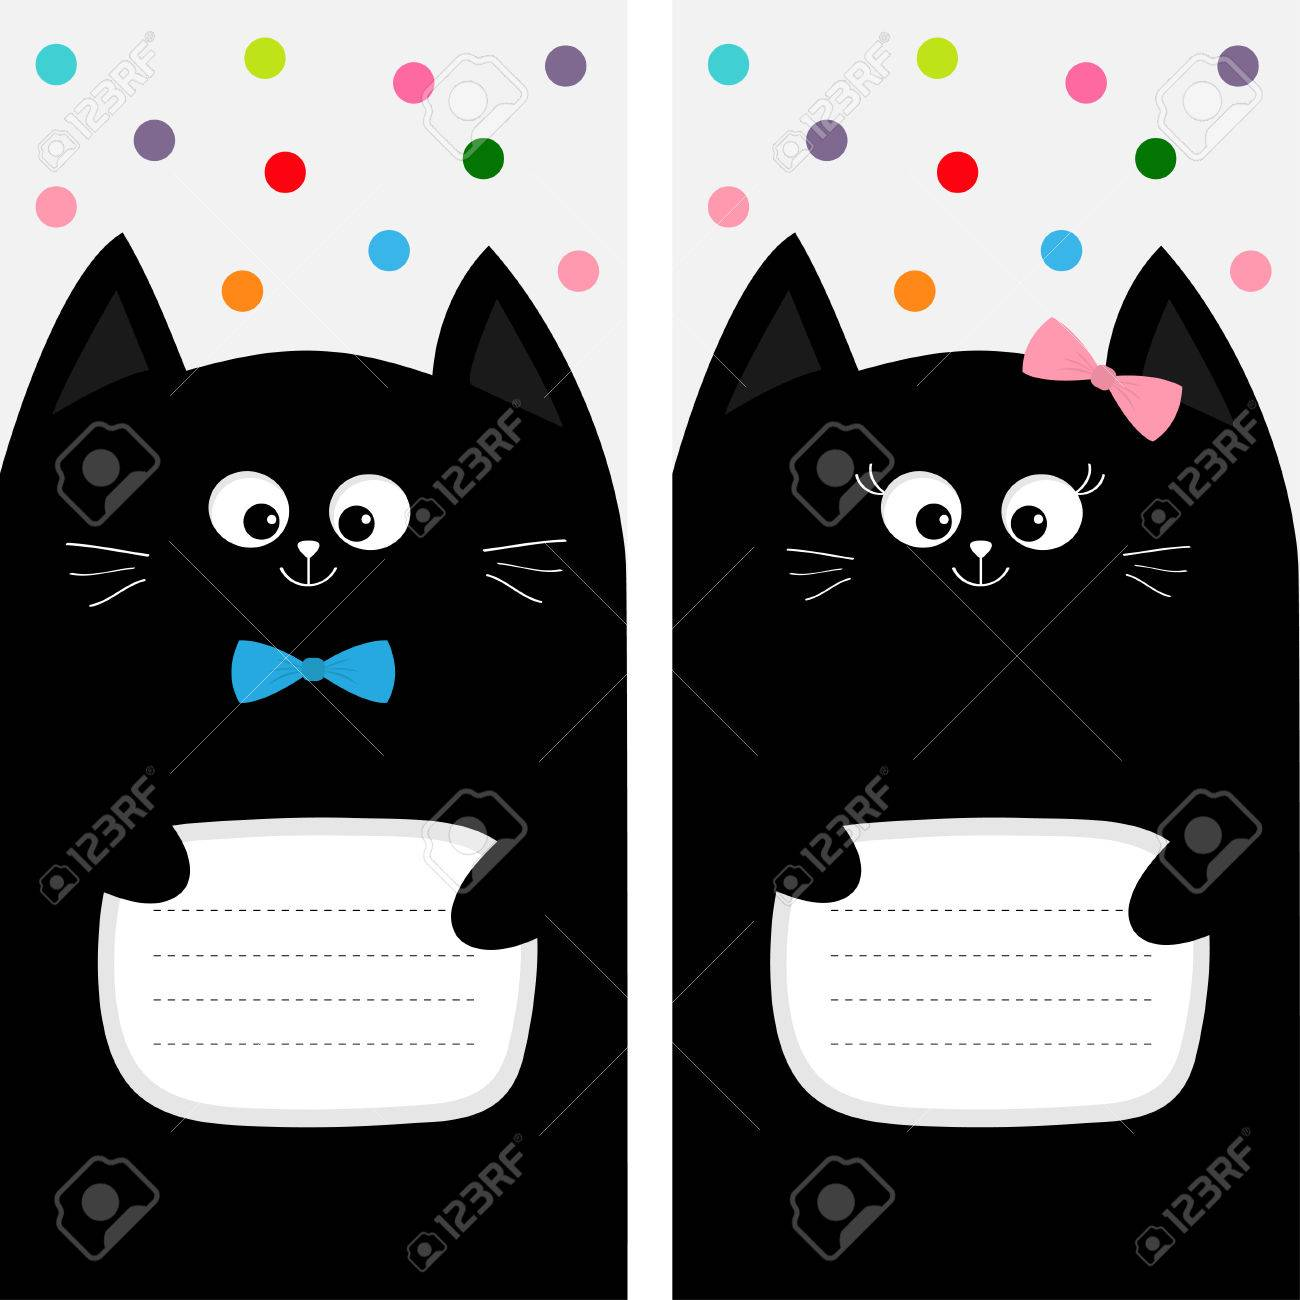 Poster Notebook Cover Composition Book Template Black Cat Kitty